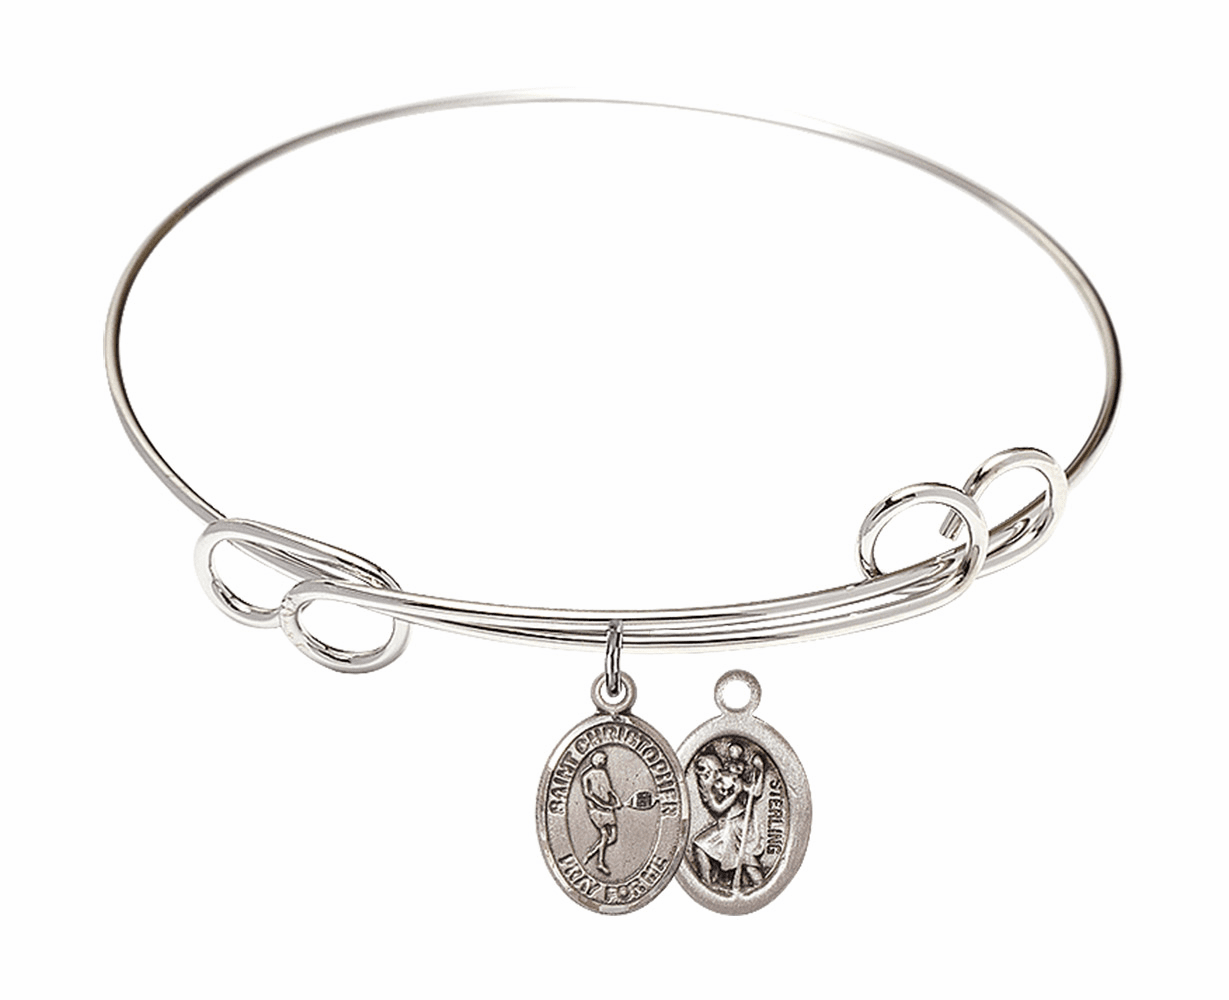 Round Loop St Christopher Tennis Bangle Charm Bracelet by Bliss